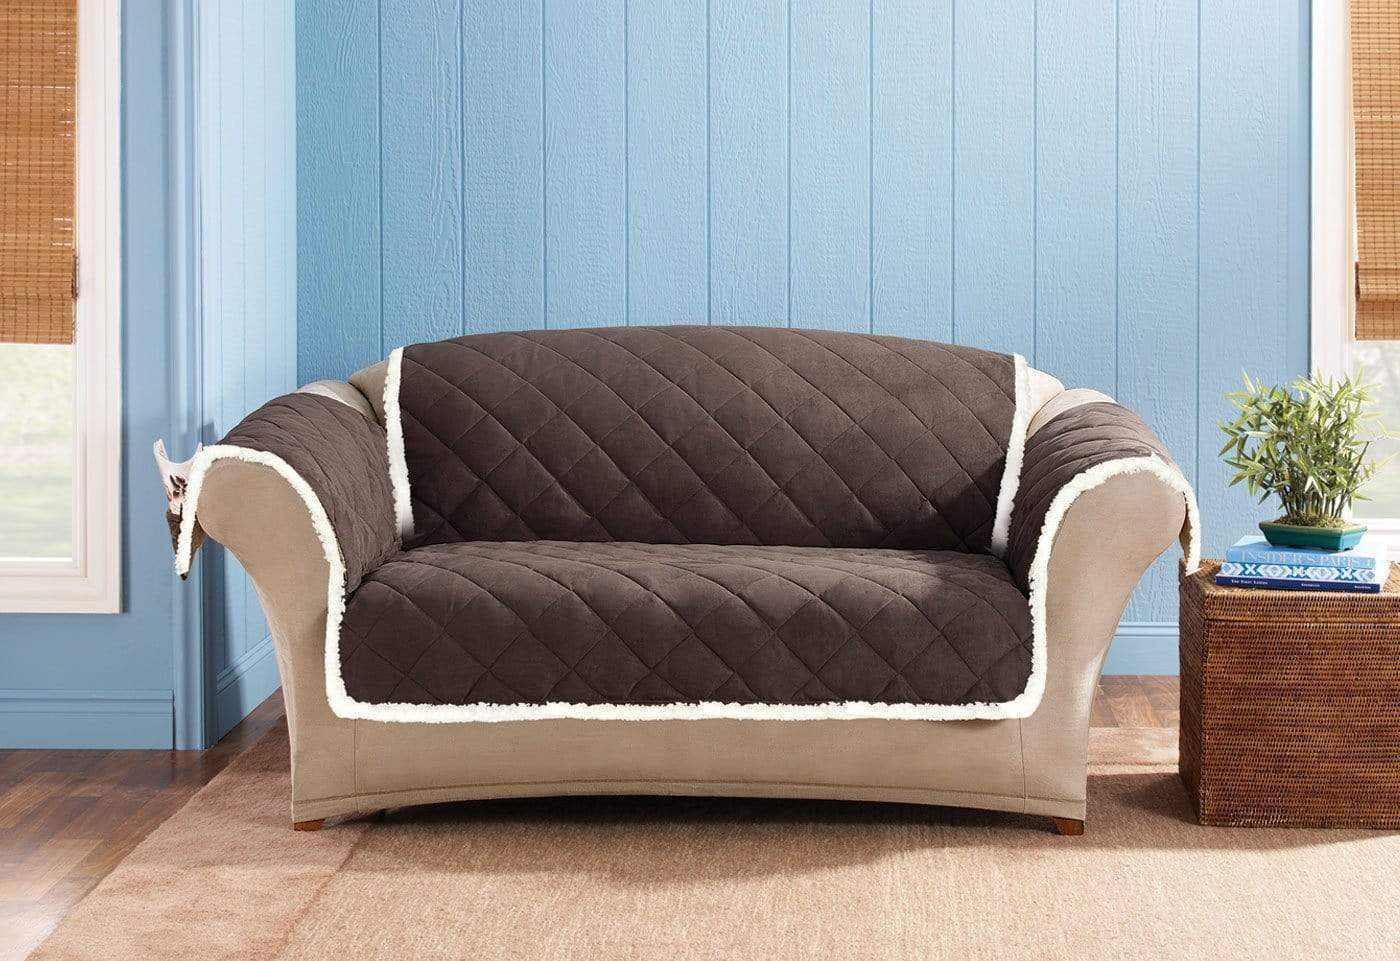 Soft Suede & Sherpa Loveseat Furniture Cover 100% Polyester Pet Furniture Cover Machine Washable - Loveseat / Chocolate